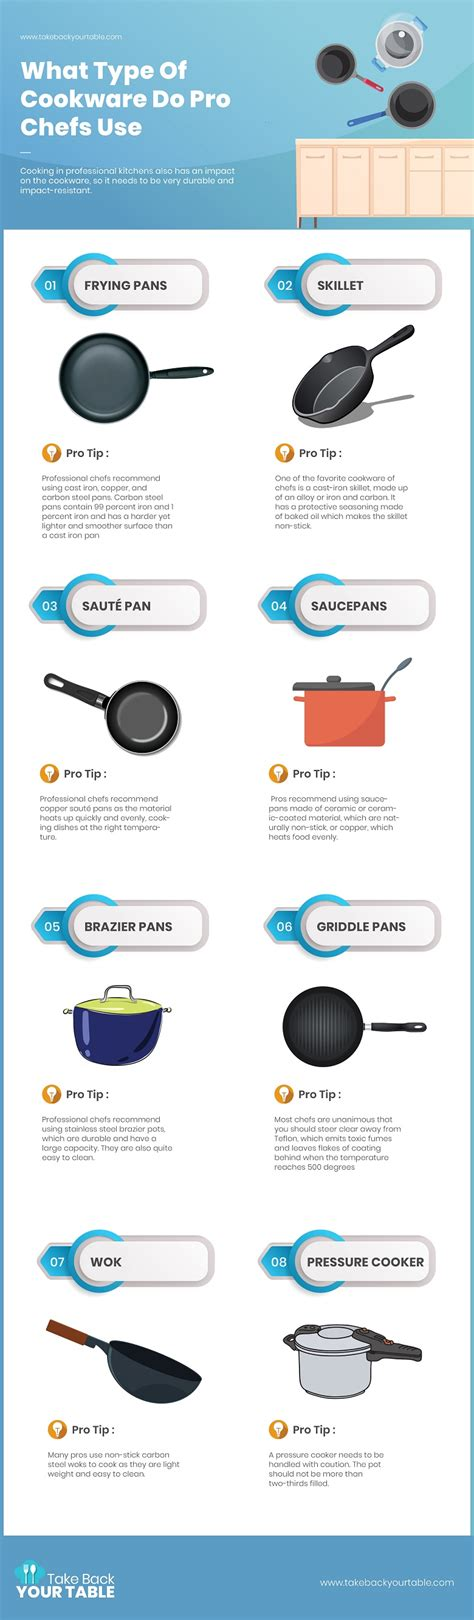 cookware chefs pro type site professional